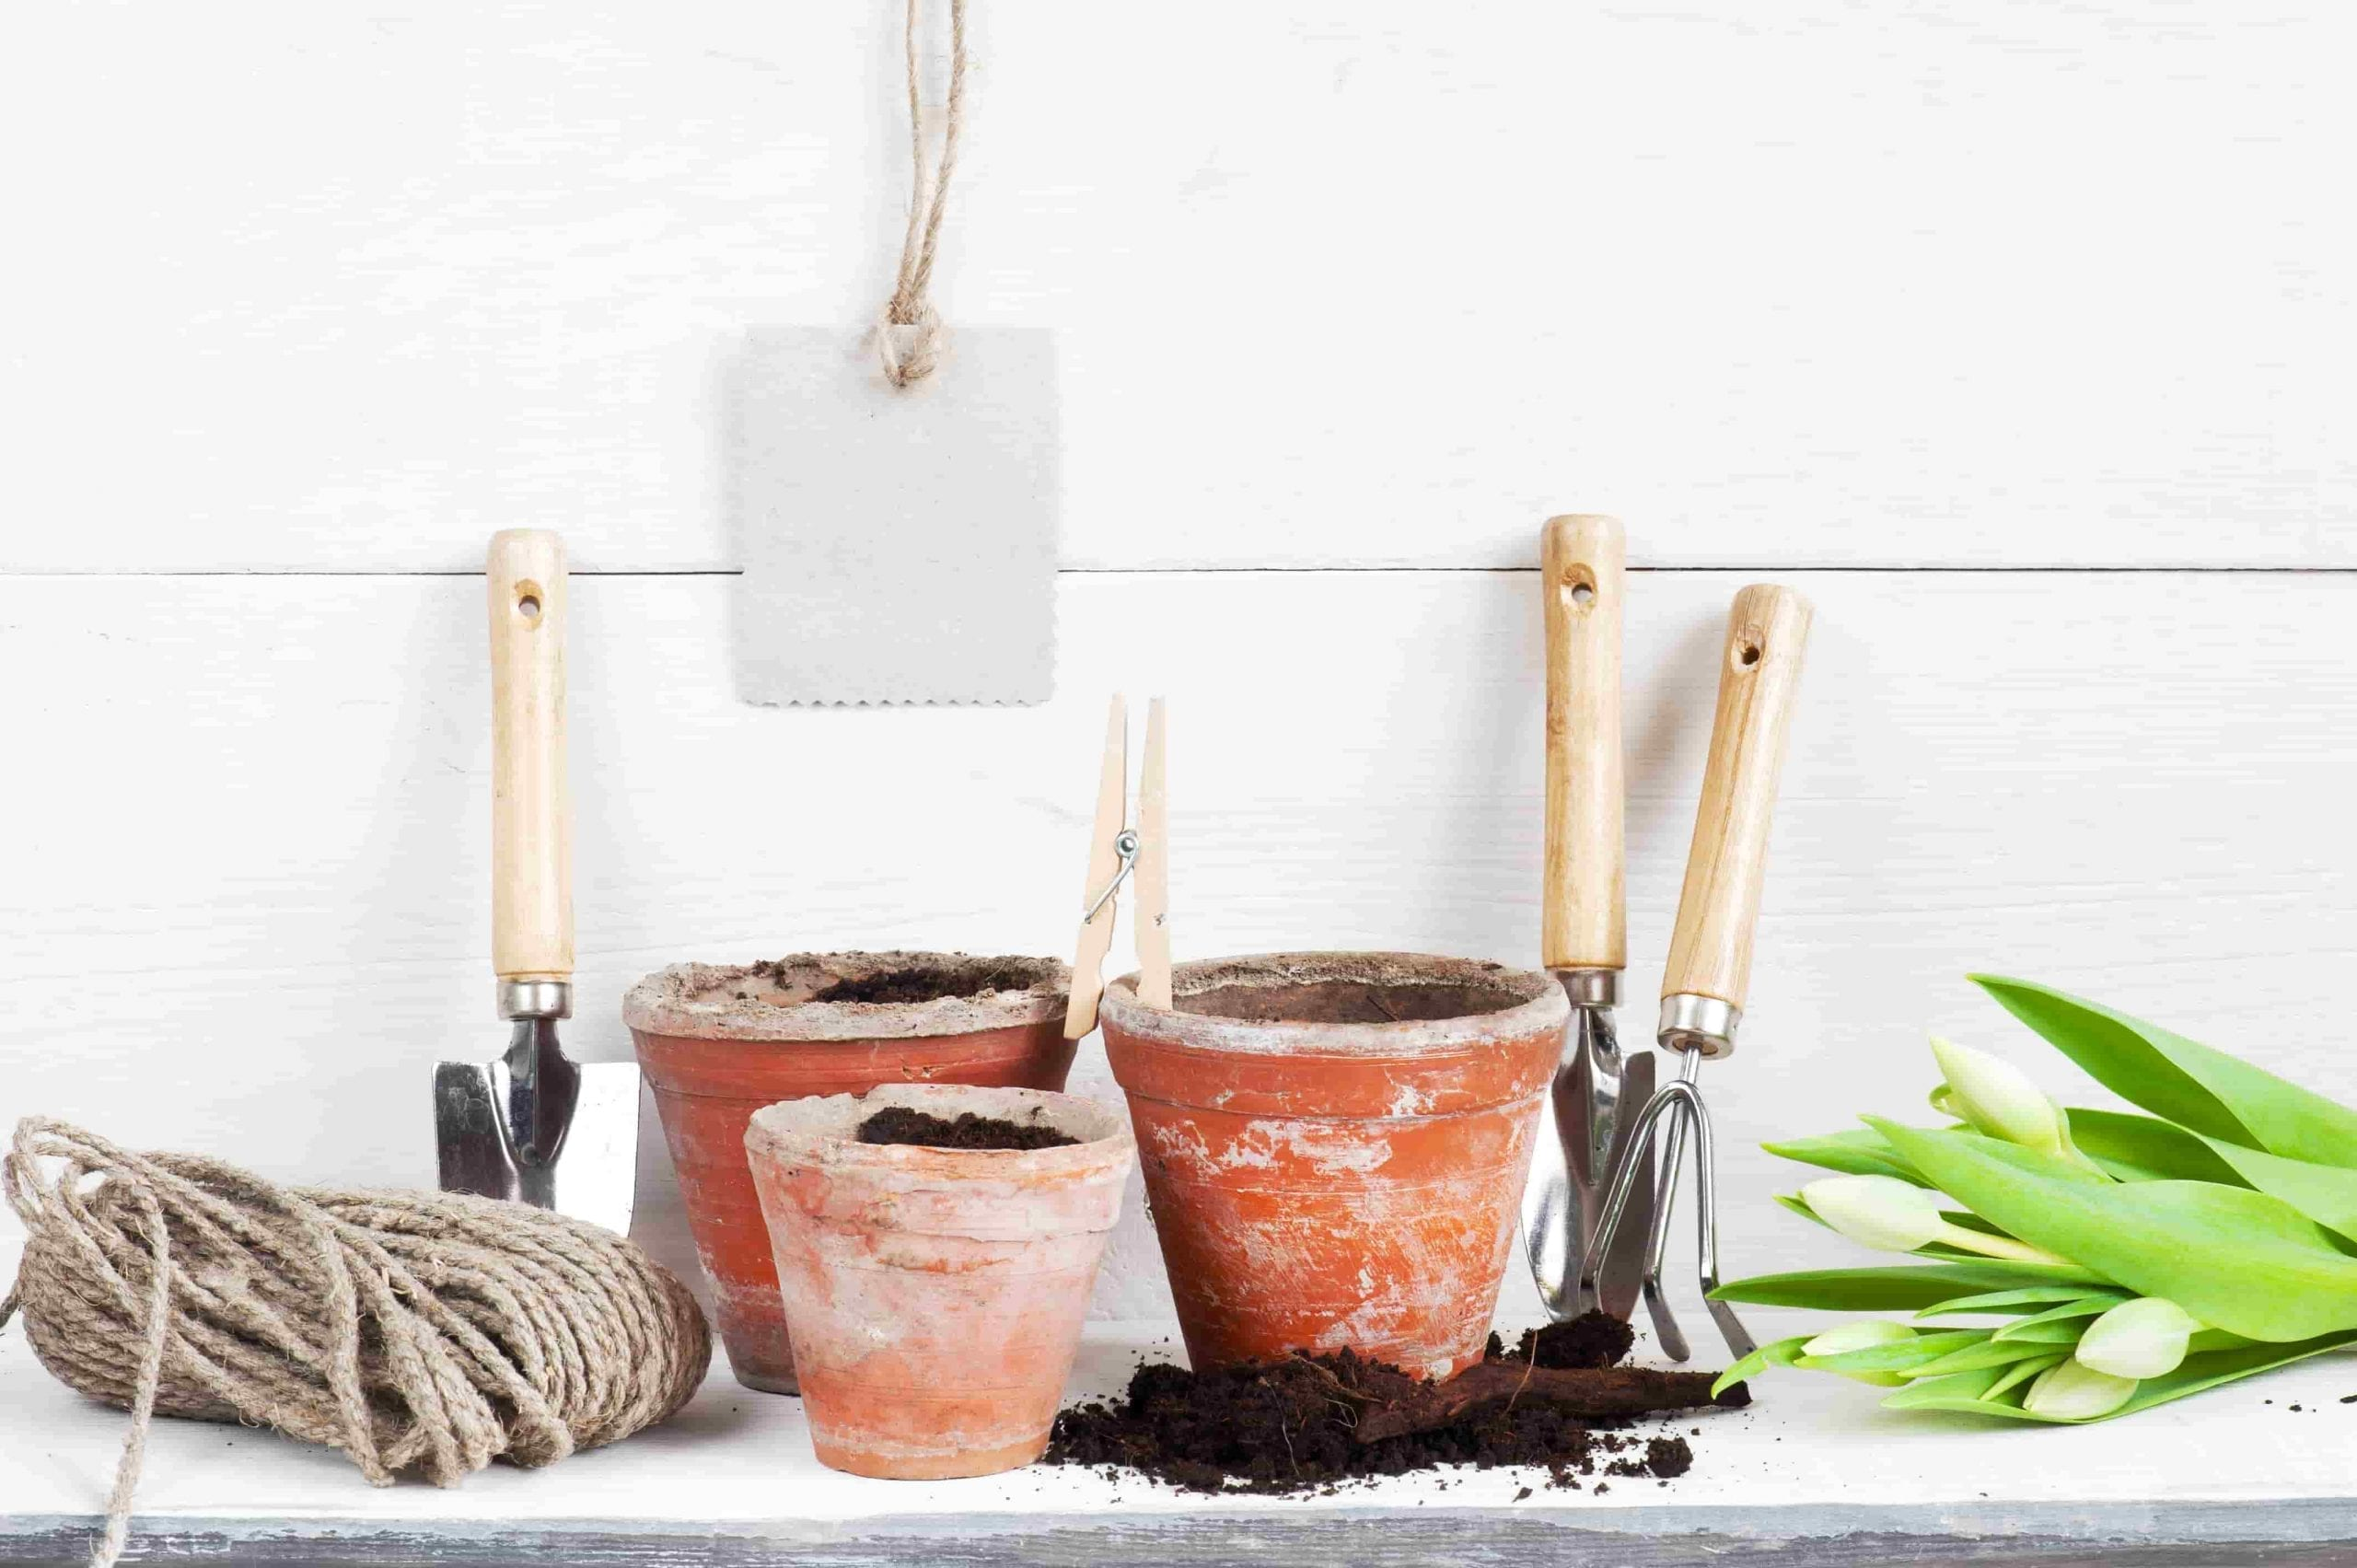 garden gifts pots, tools, tulips, string, note